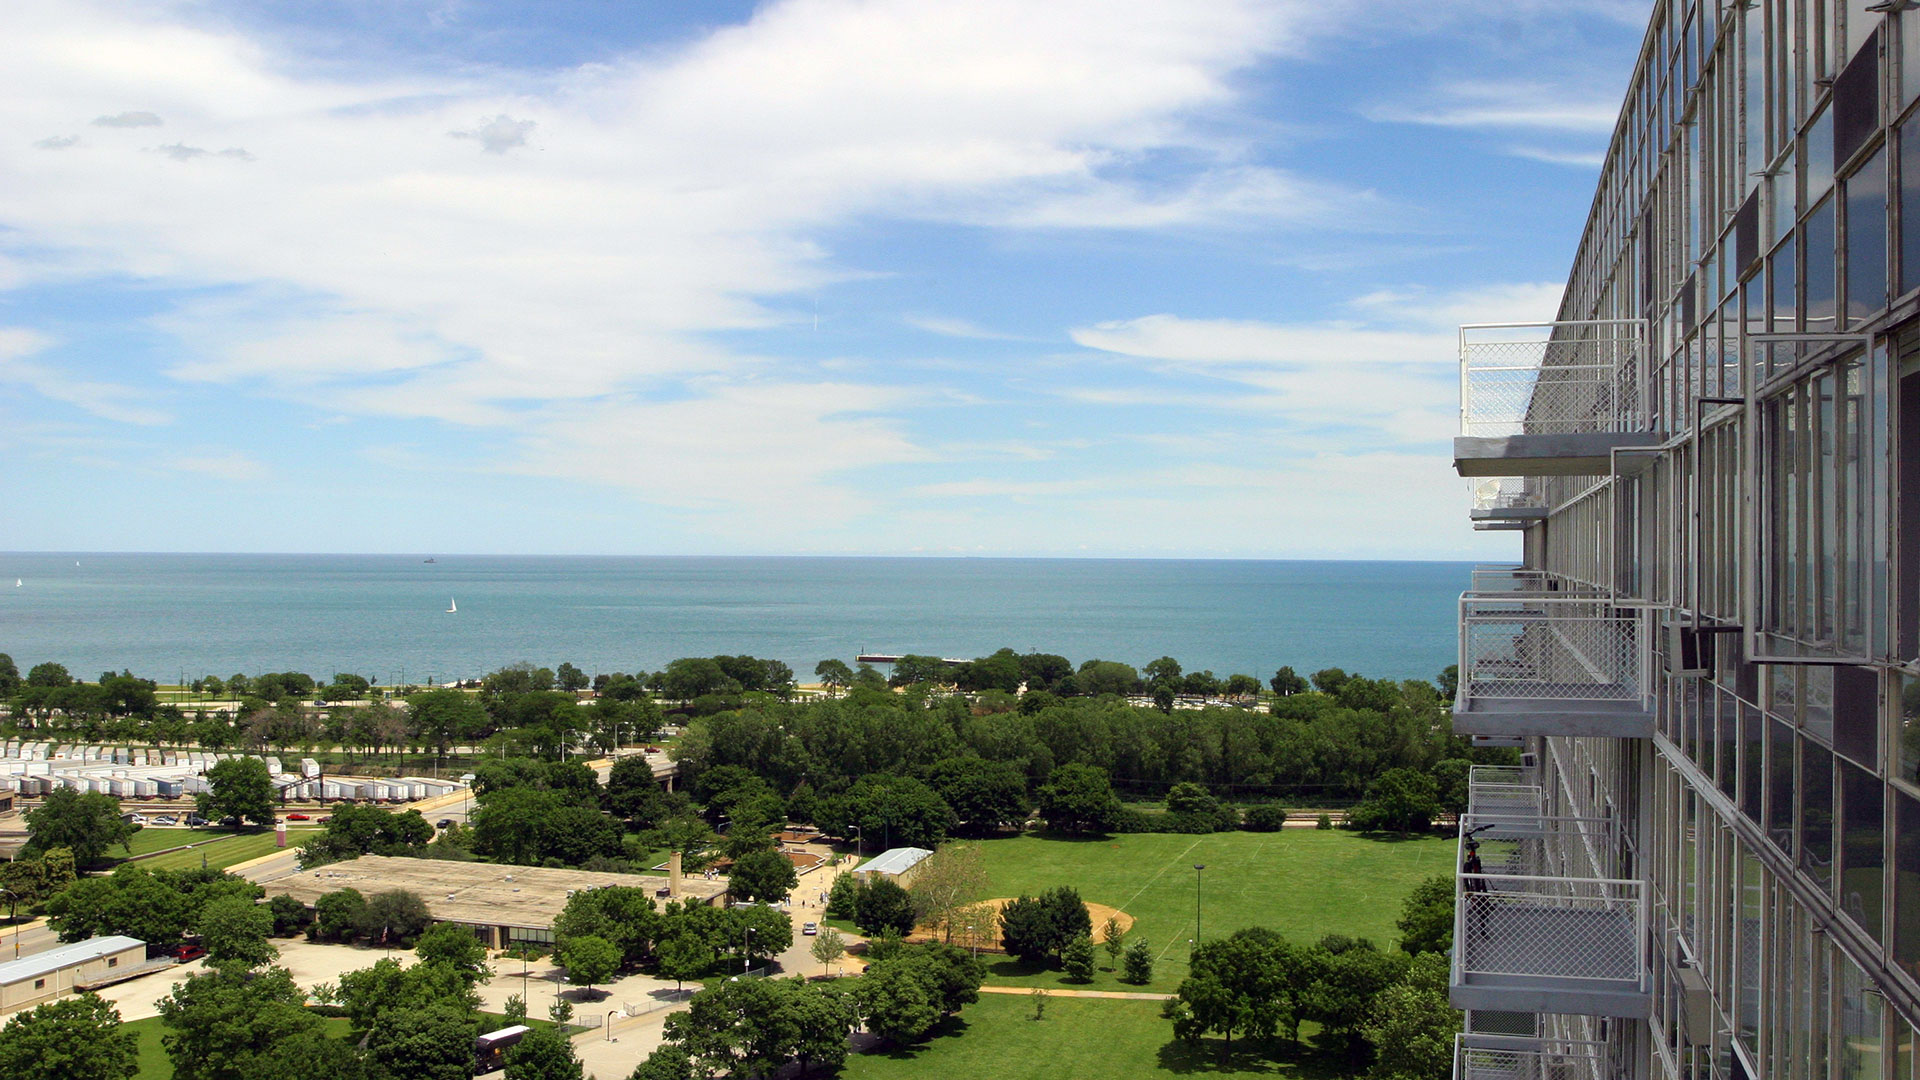 A view along the exterior of a Lake Meadows high rise with Lake Michigan seen just a short distance away.